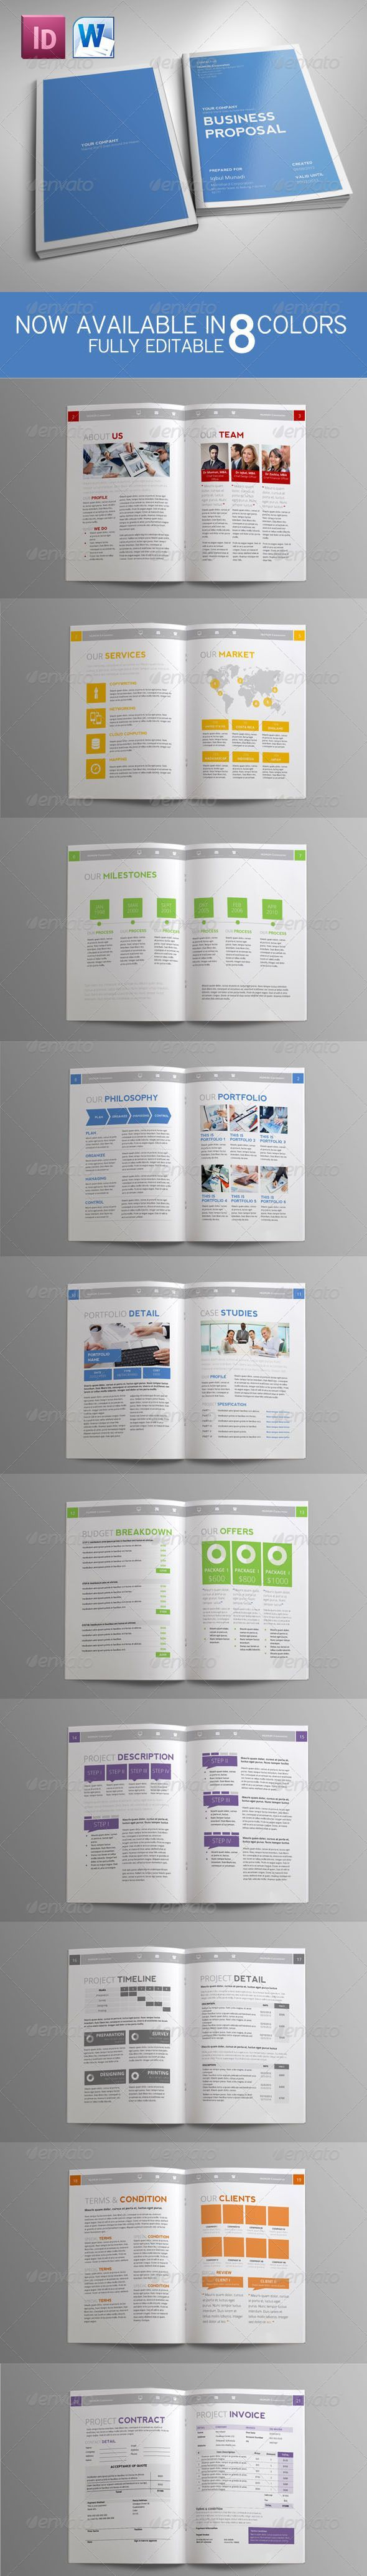 Commercial Proposal Format Entrancing 20 Best Business Propocal Images On Pinterest  Editorial Design .